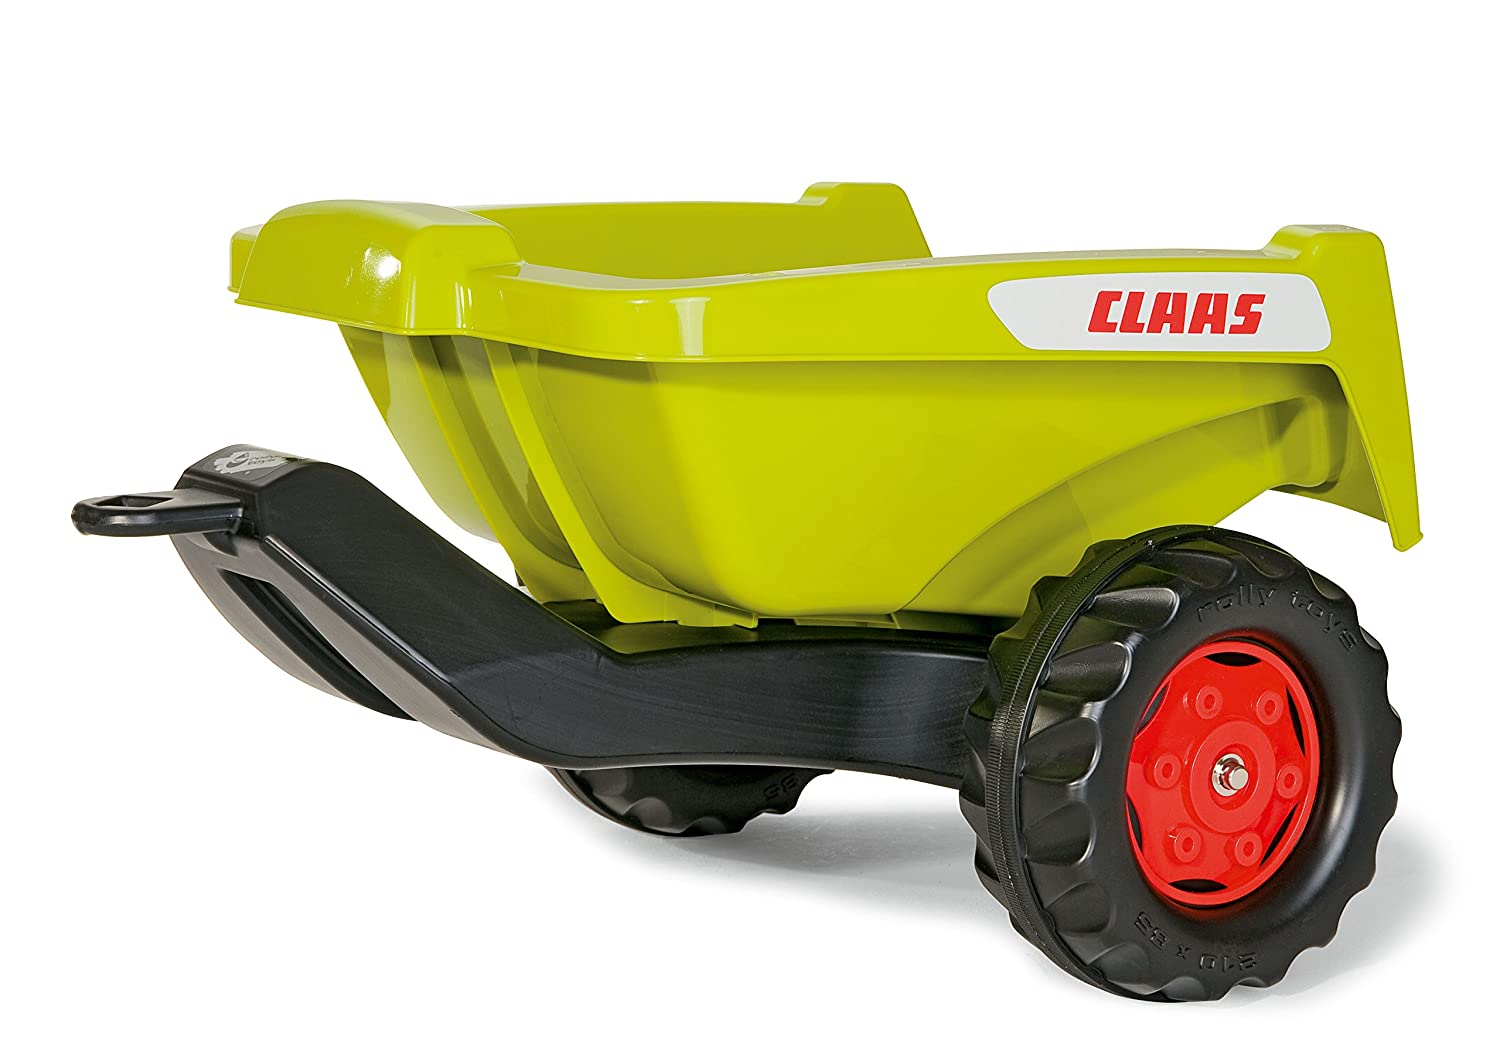 Rolly Toys Claas Arion 640 - Rolly Toys rollyKipper II Claas Anhänger